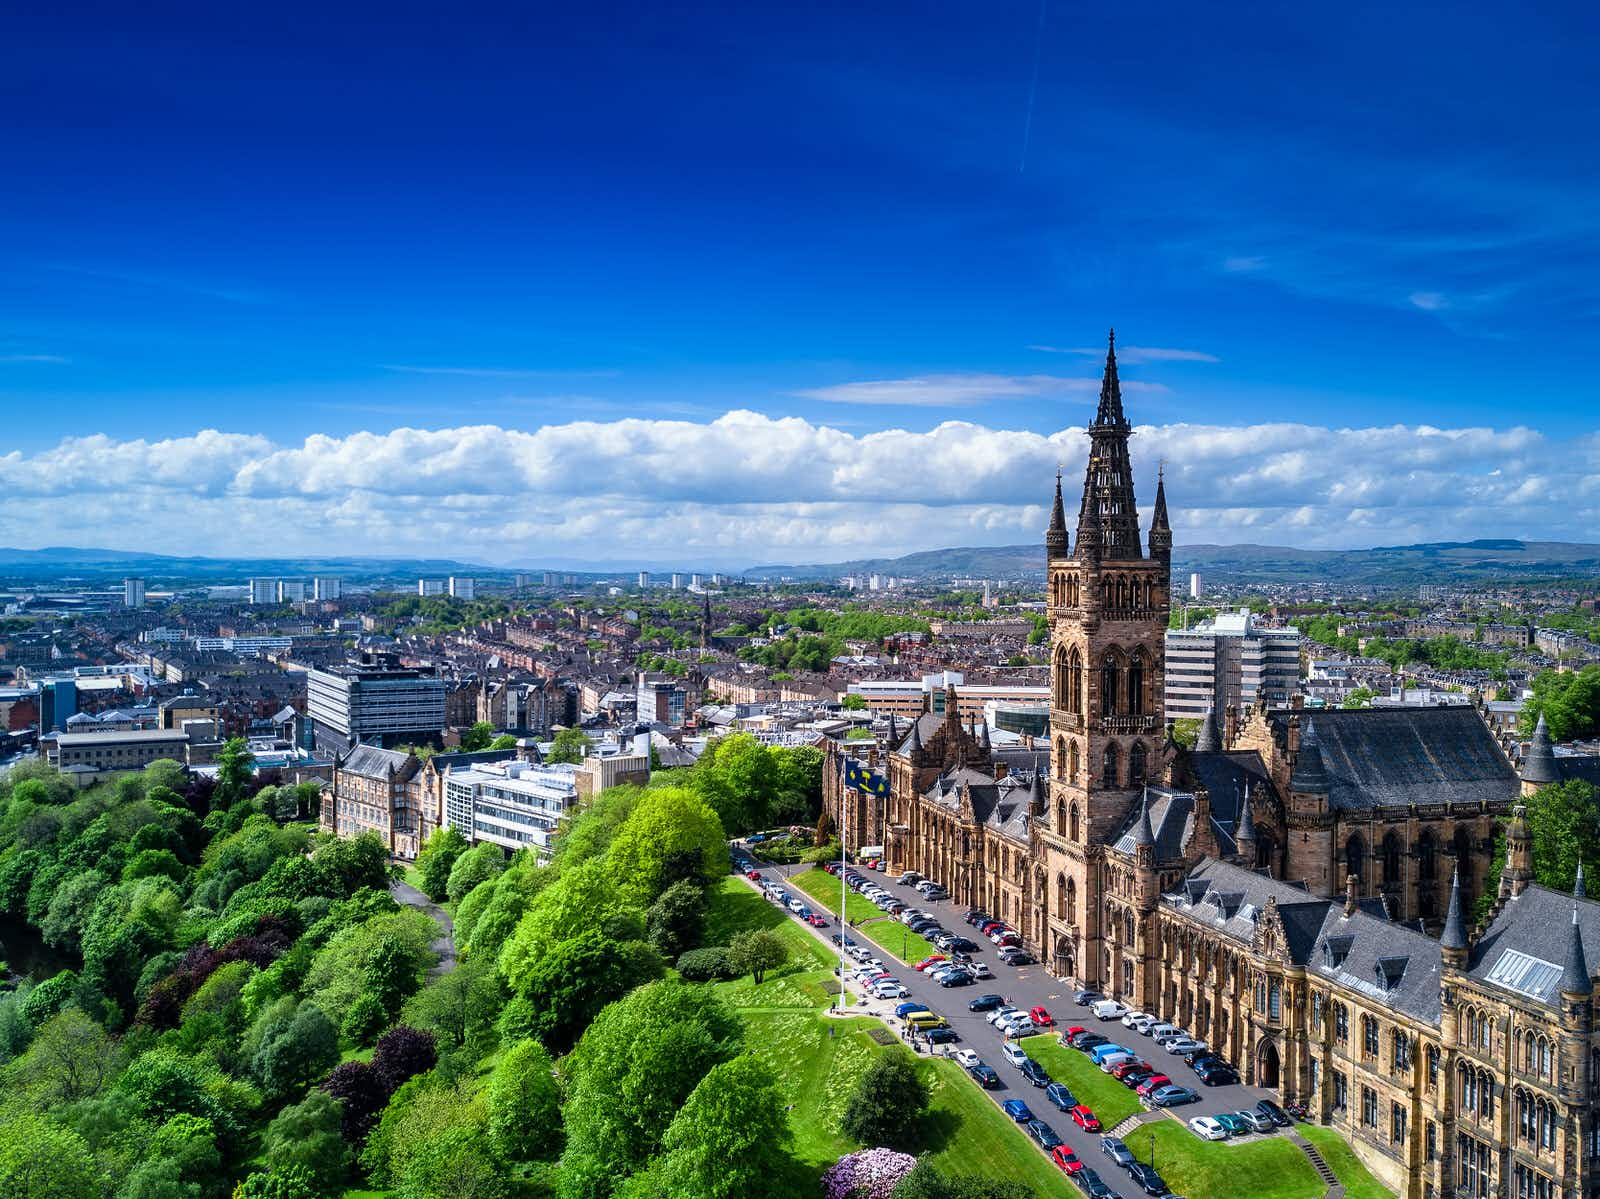 Galleries, gigs and great green spaces: top 10 things to do in Glasgow